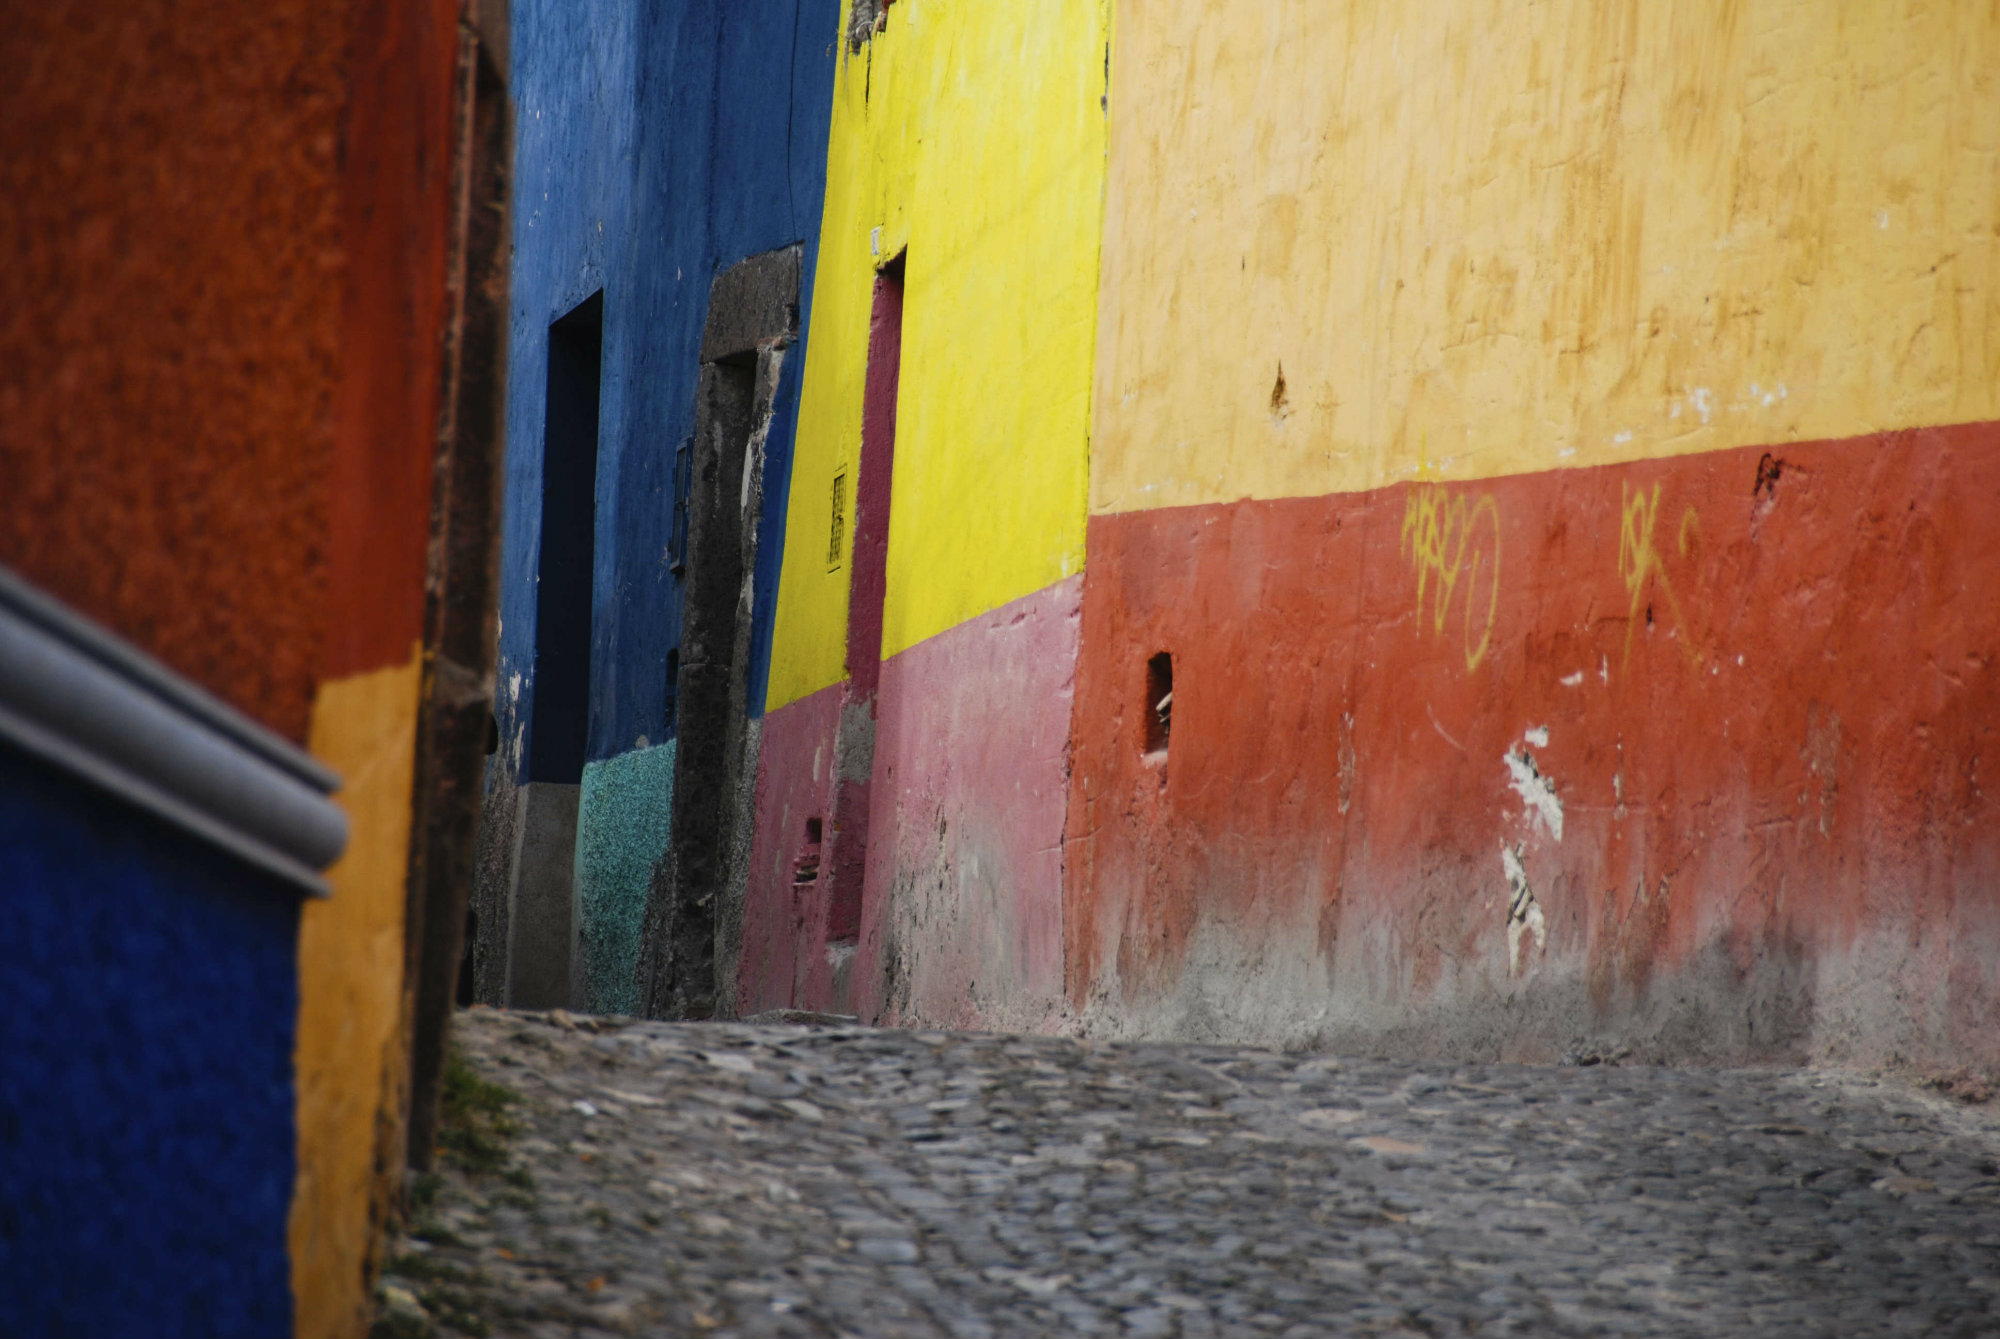 Building science communication networks: A case study from Latin America and the Carribean